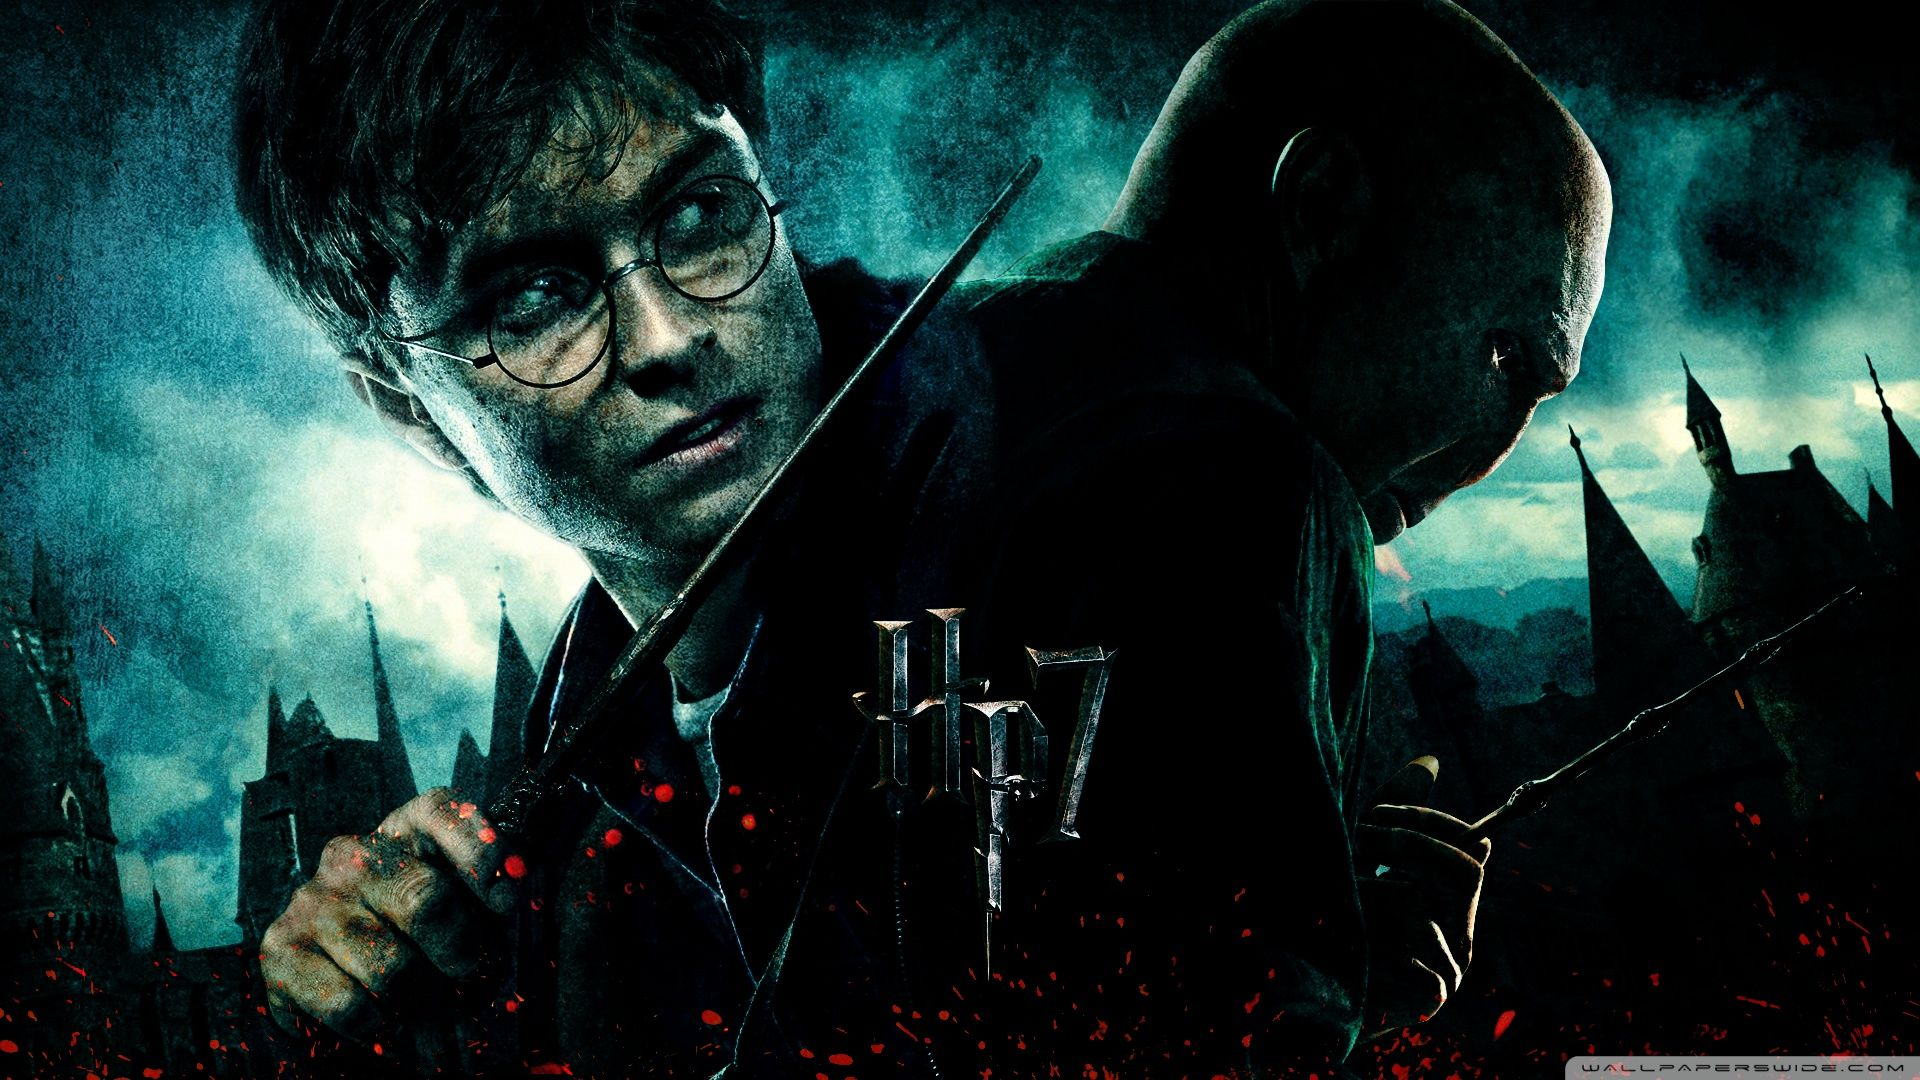 Harry Potter Wallpaper For Android Click Wallpapers Harry Potter Wallpaper Harry Potter Harry Potter Quizzes